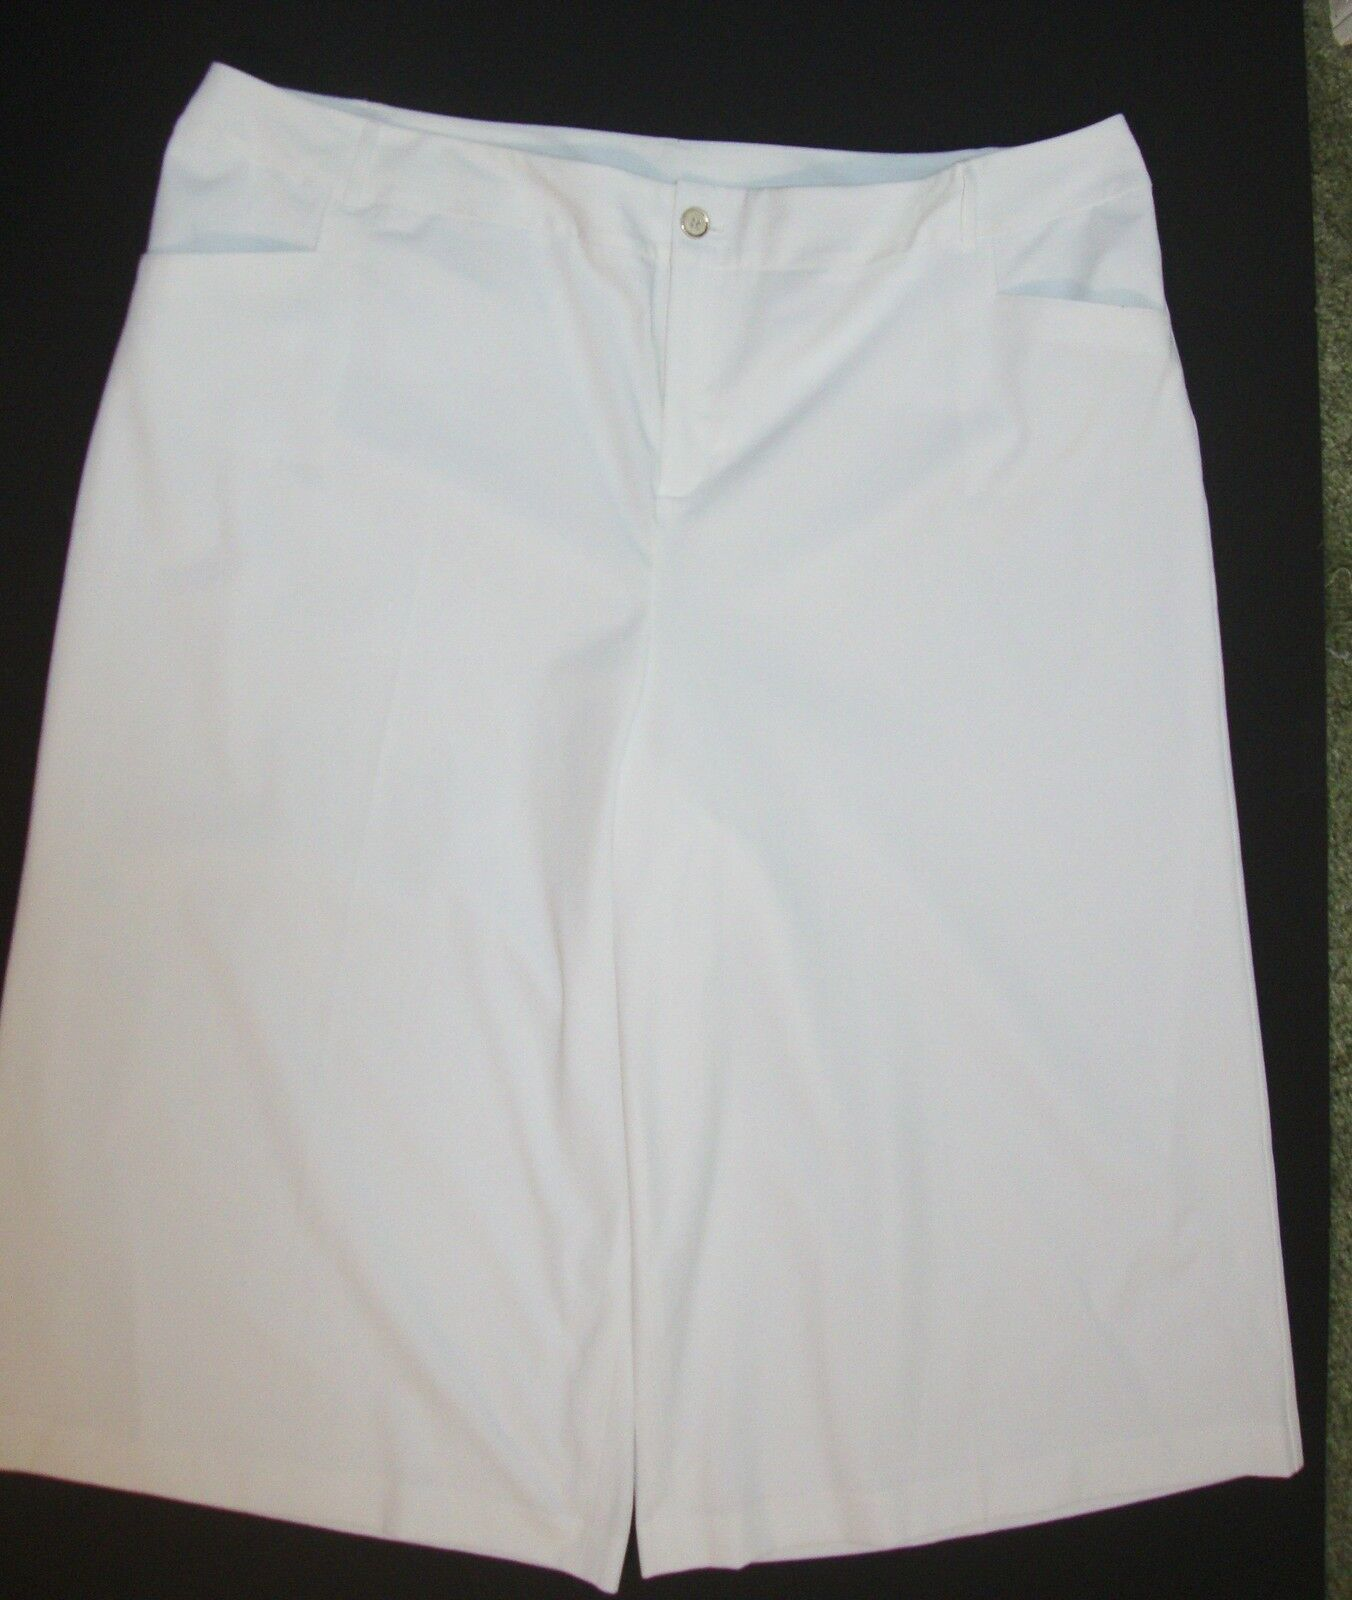 Lane Bryant 6th and Lane White Dressy Capri Pants Womens Plus 28